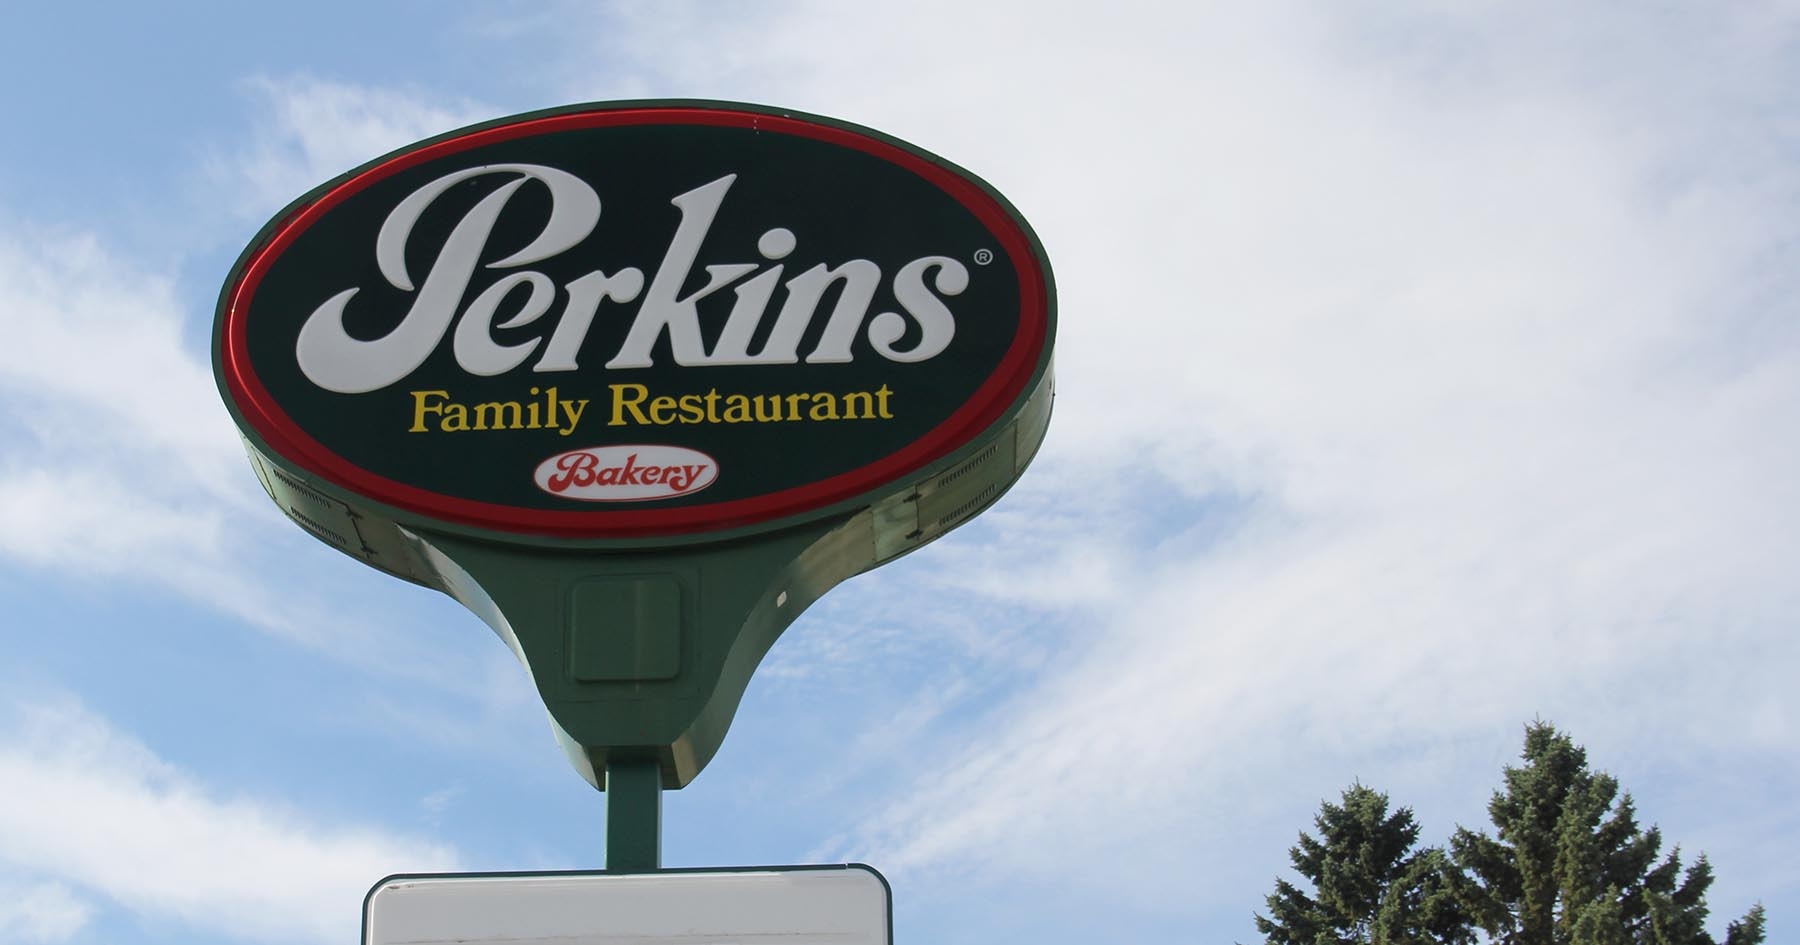 After 13 years and 2 bankruptcies, Perkins and Marie Callender's split up